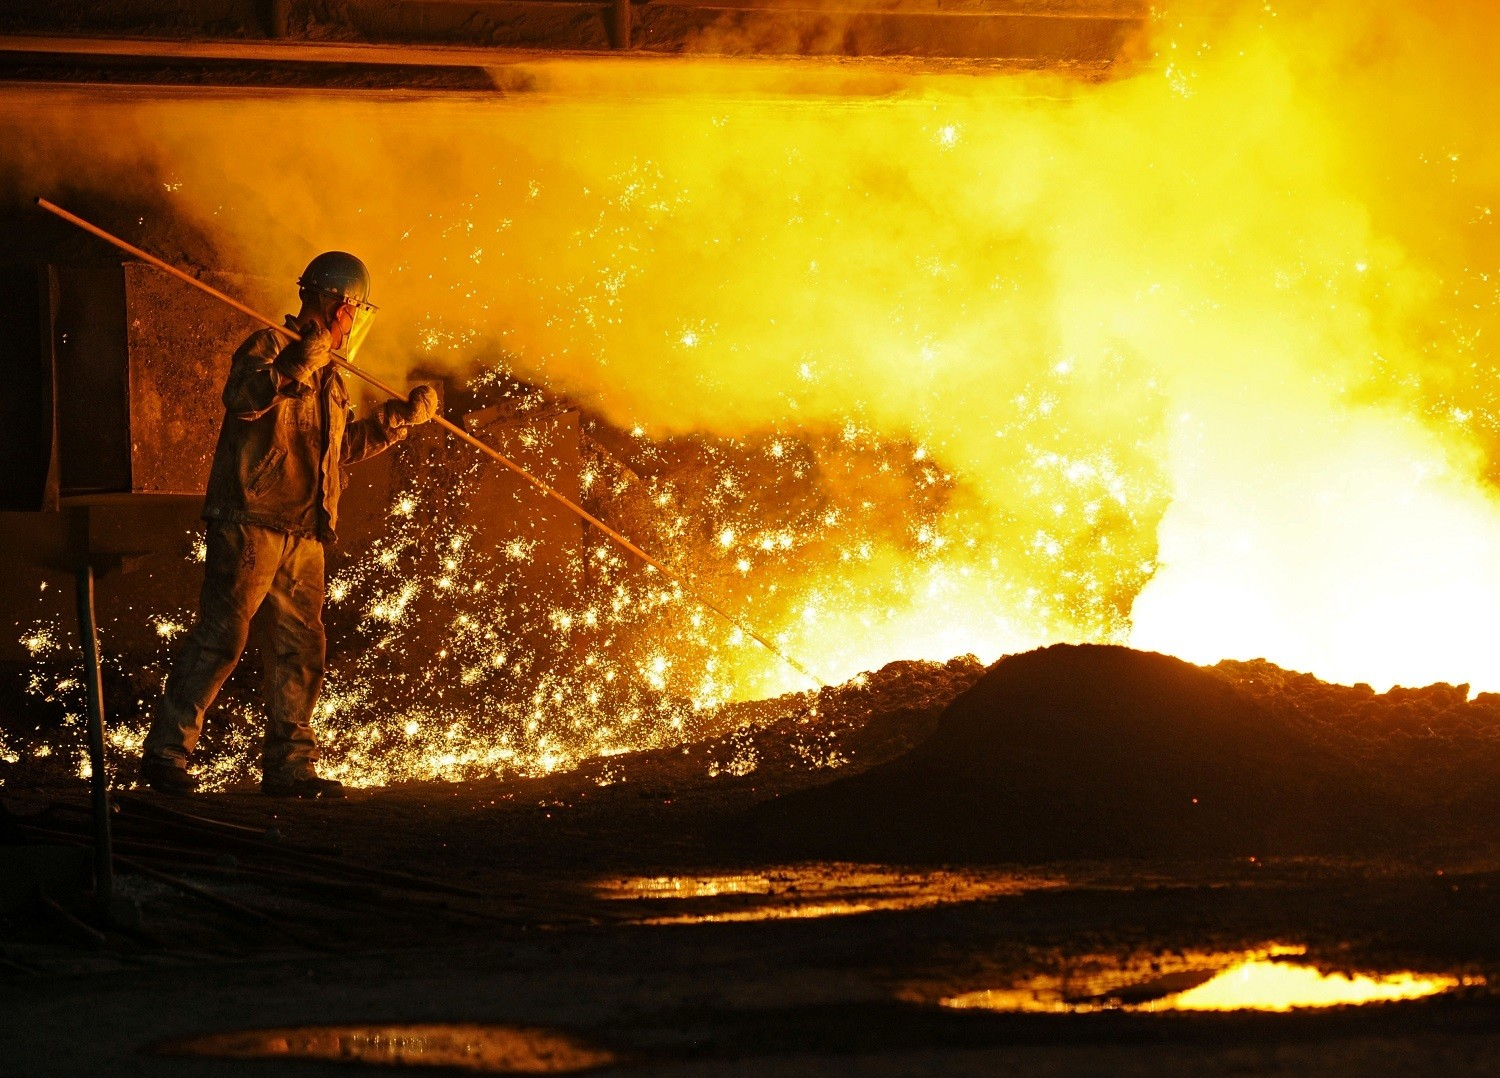 An employee works next to molten iron at a steel mill of Dongbei Special Steel in Dalian, Liaoning province, China July 17, 2018. REUTERS/Stringer  ATTENTION EDITORS - THIS IMAGE WAS PROVIDED BY A THIRD PARTY. CHINA OUT. - RC1EE6BD4C50